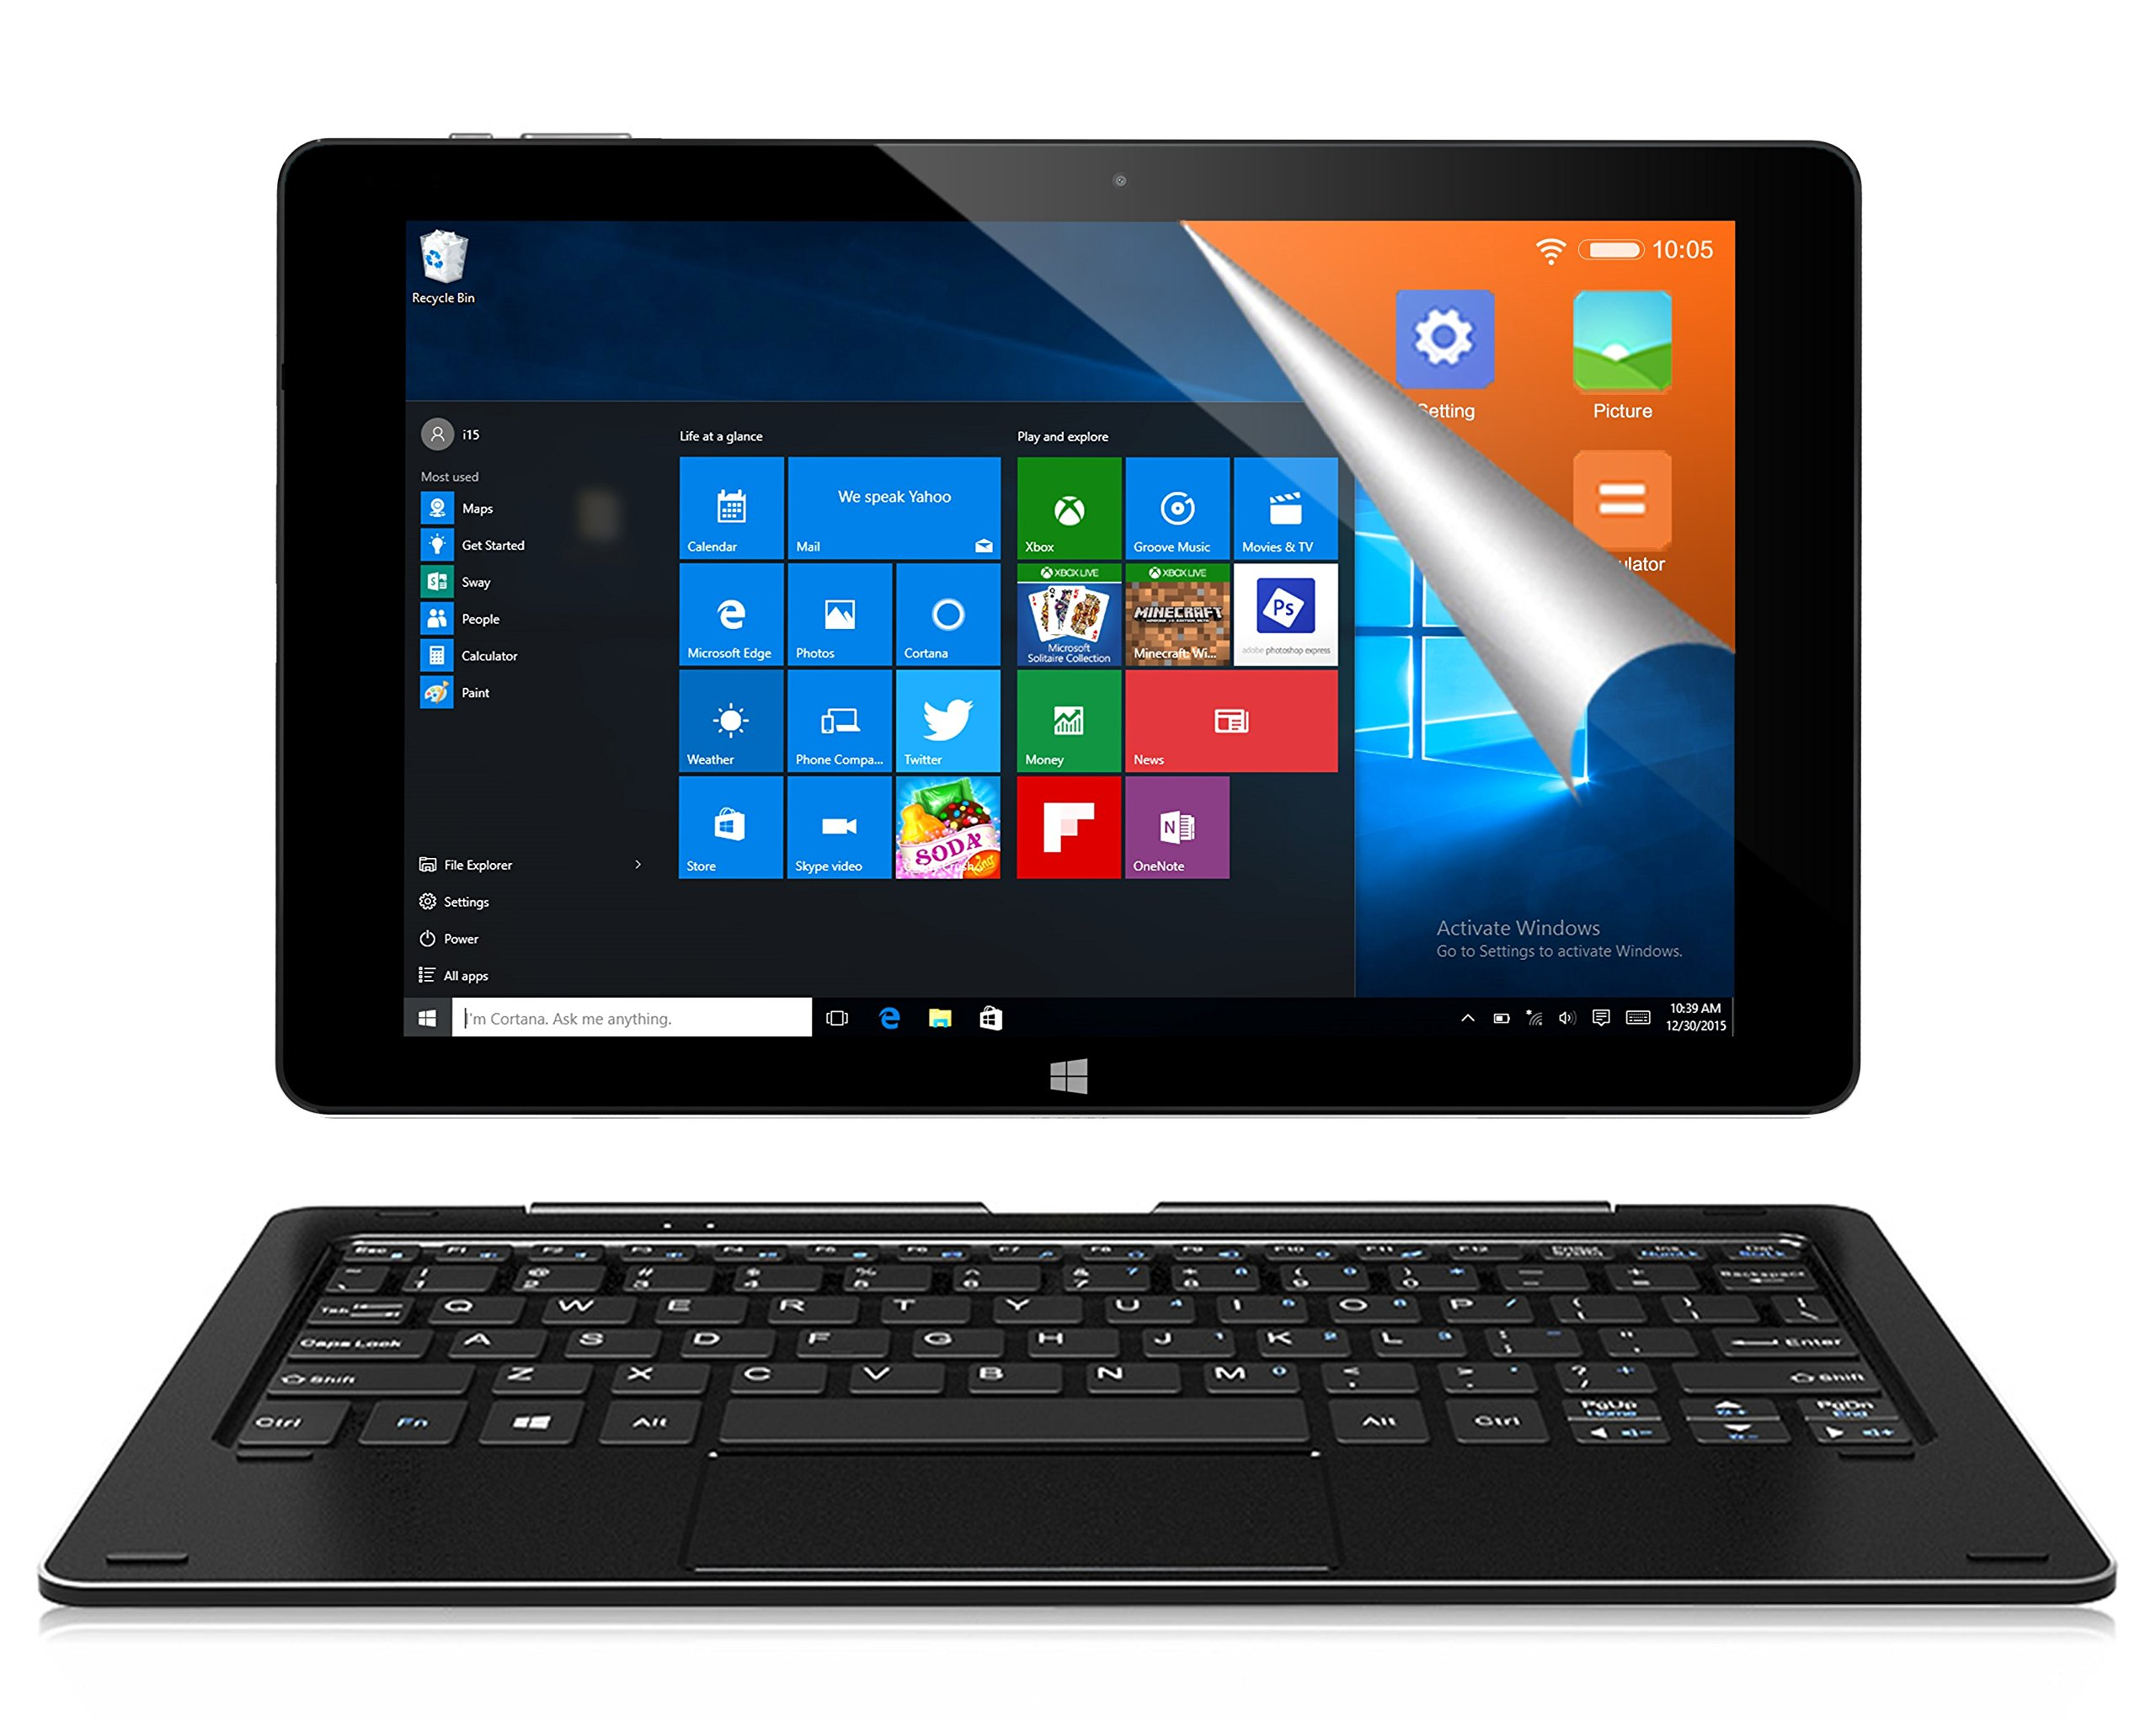 ALLDOCUBE iwork10 Pro 2-in-1 Tablet PC with Keyboard, 10.1 inch 1920x1200 IPS Screen, Windows 10 + Android 5.1, Intel Atom X5 Z8350 Quad Core, 4GB RAM, 64GB ROM, USB Type-C, HDMI Output, Black